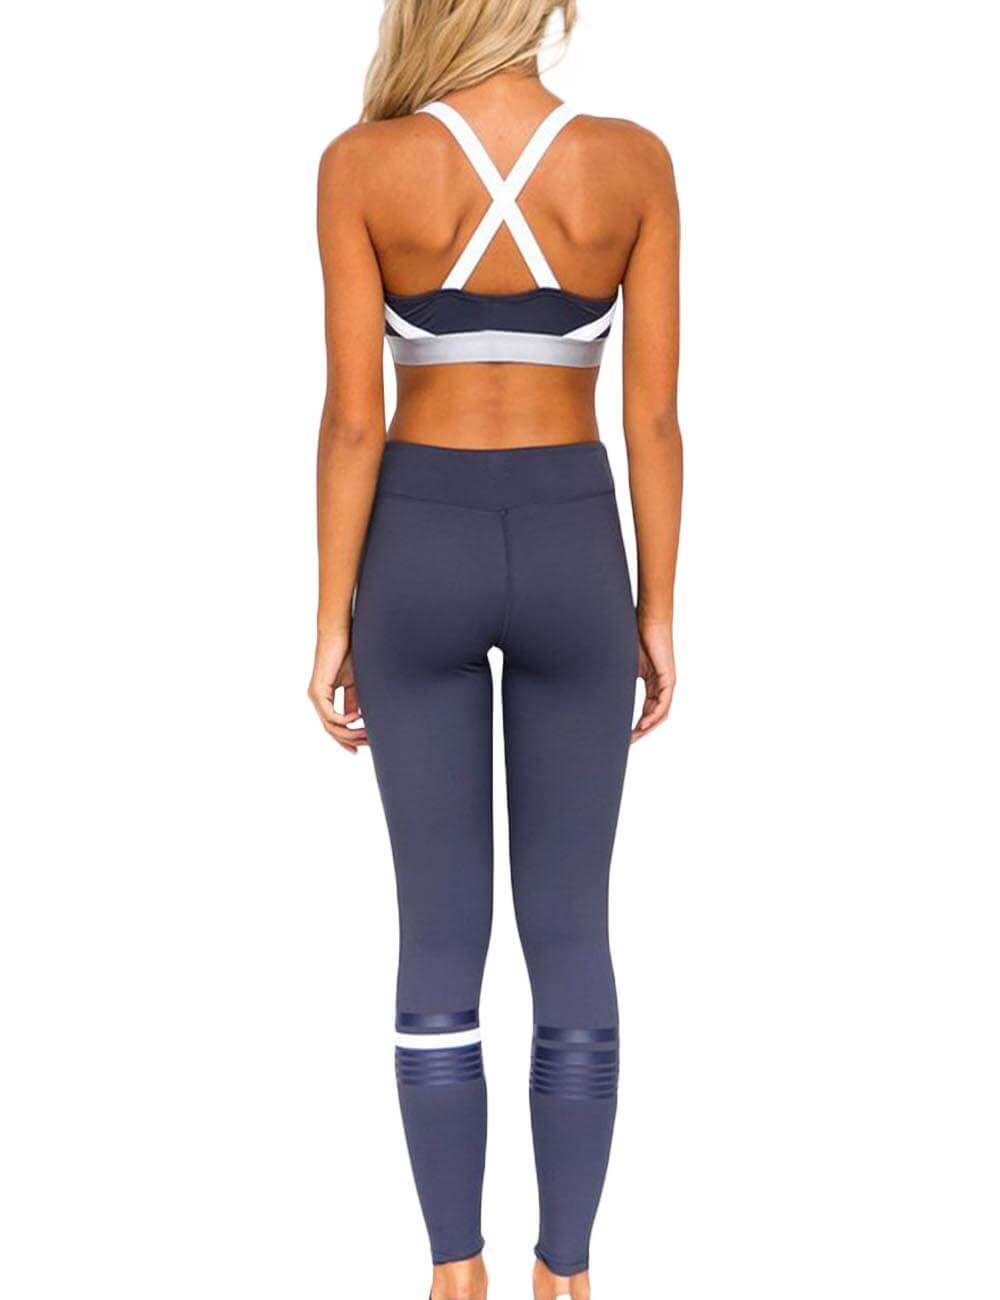 Women 2PCS Patchwork Sporty Gym Bra Tank Top Cross Back Sexy Yoga Leggings Jumpsuits Stretchy Tights Tracksuits